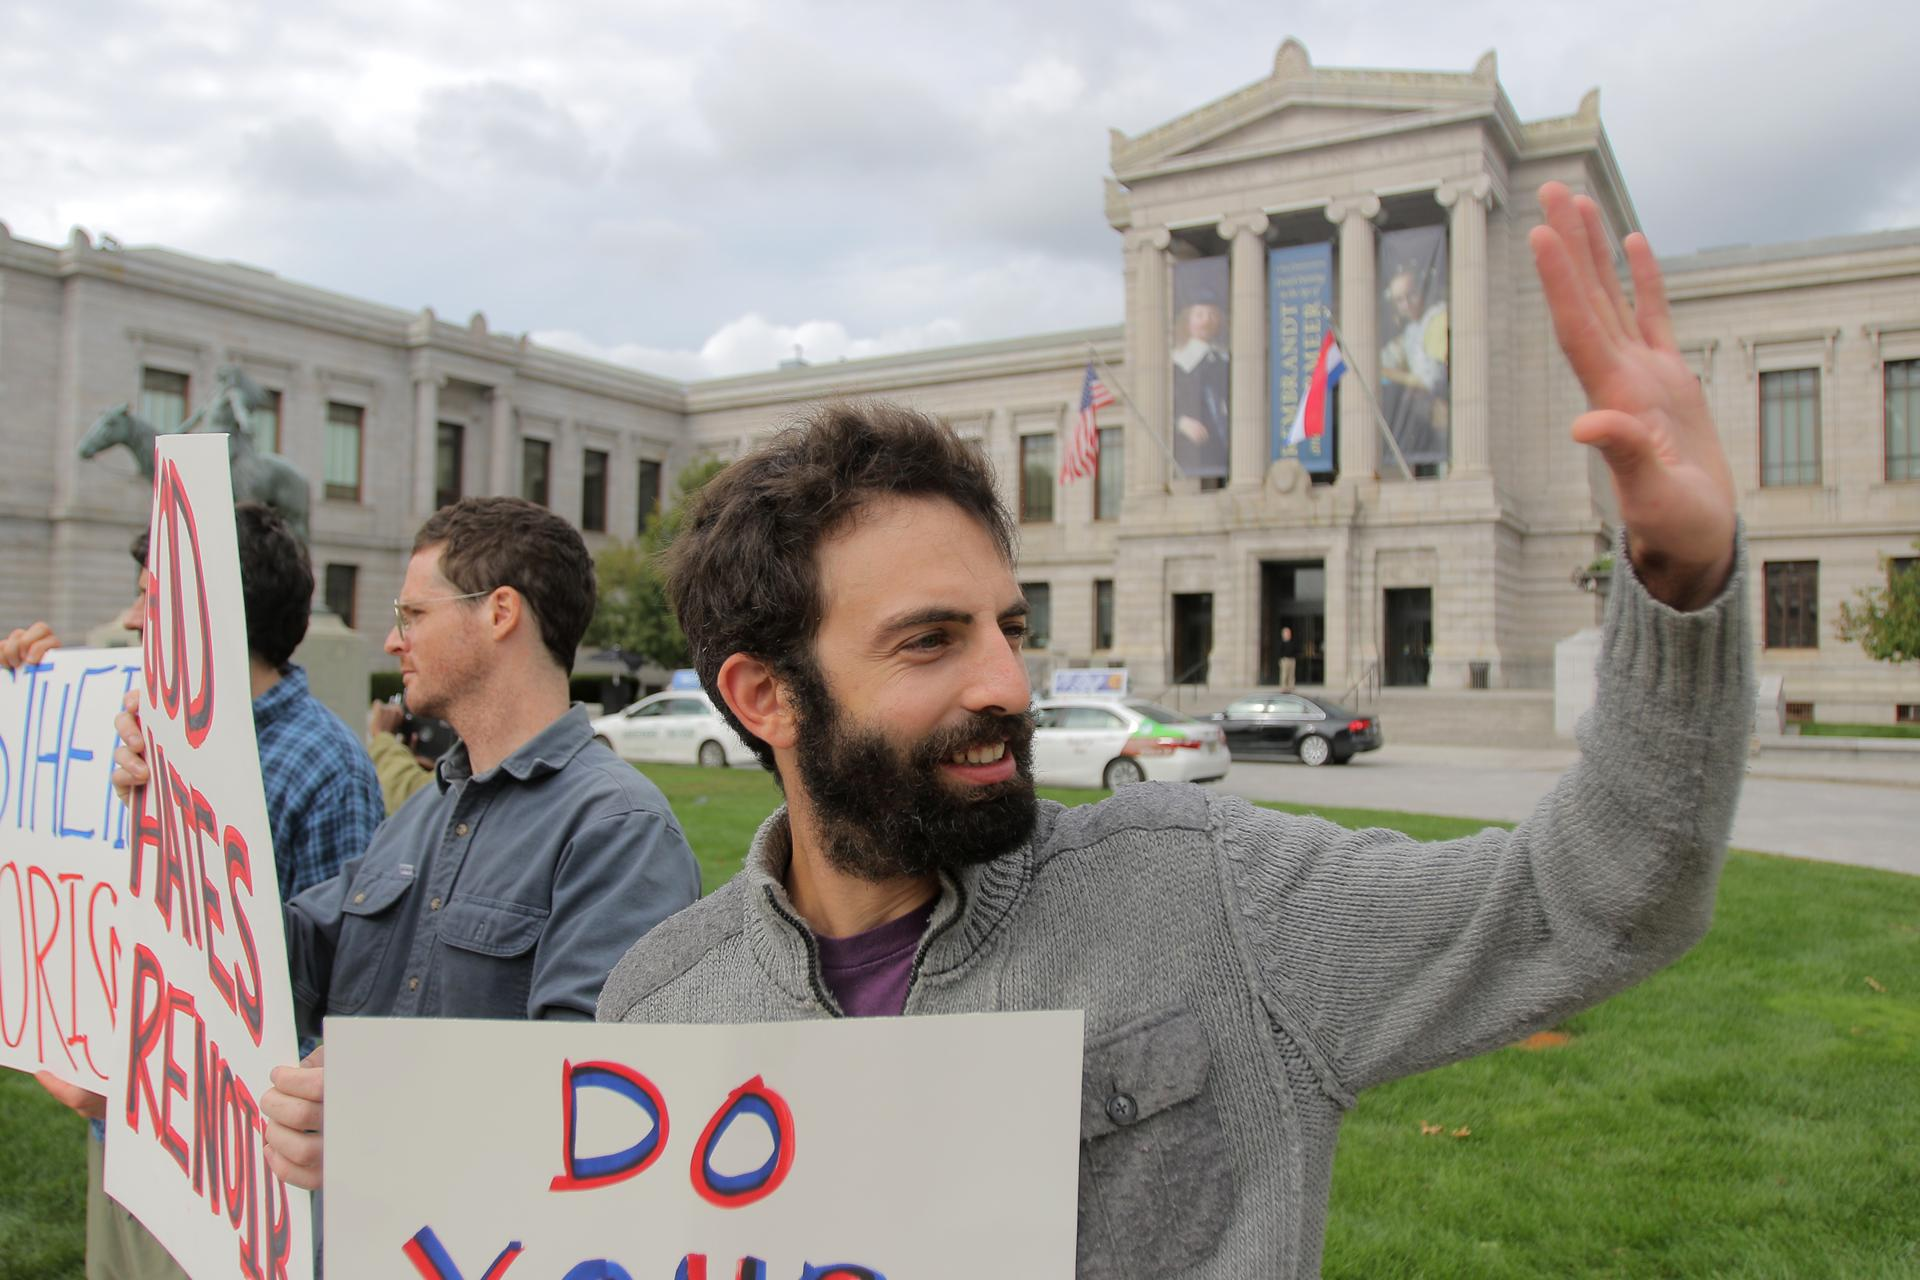 Max Geller (foreground) and other protesters outside the Museum of Fine Arts in Boston.